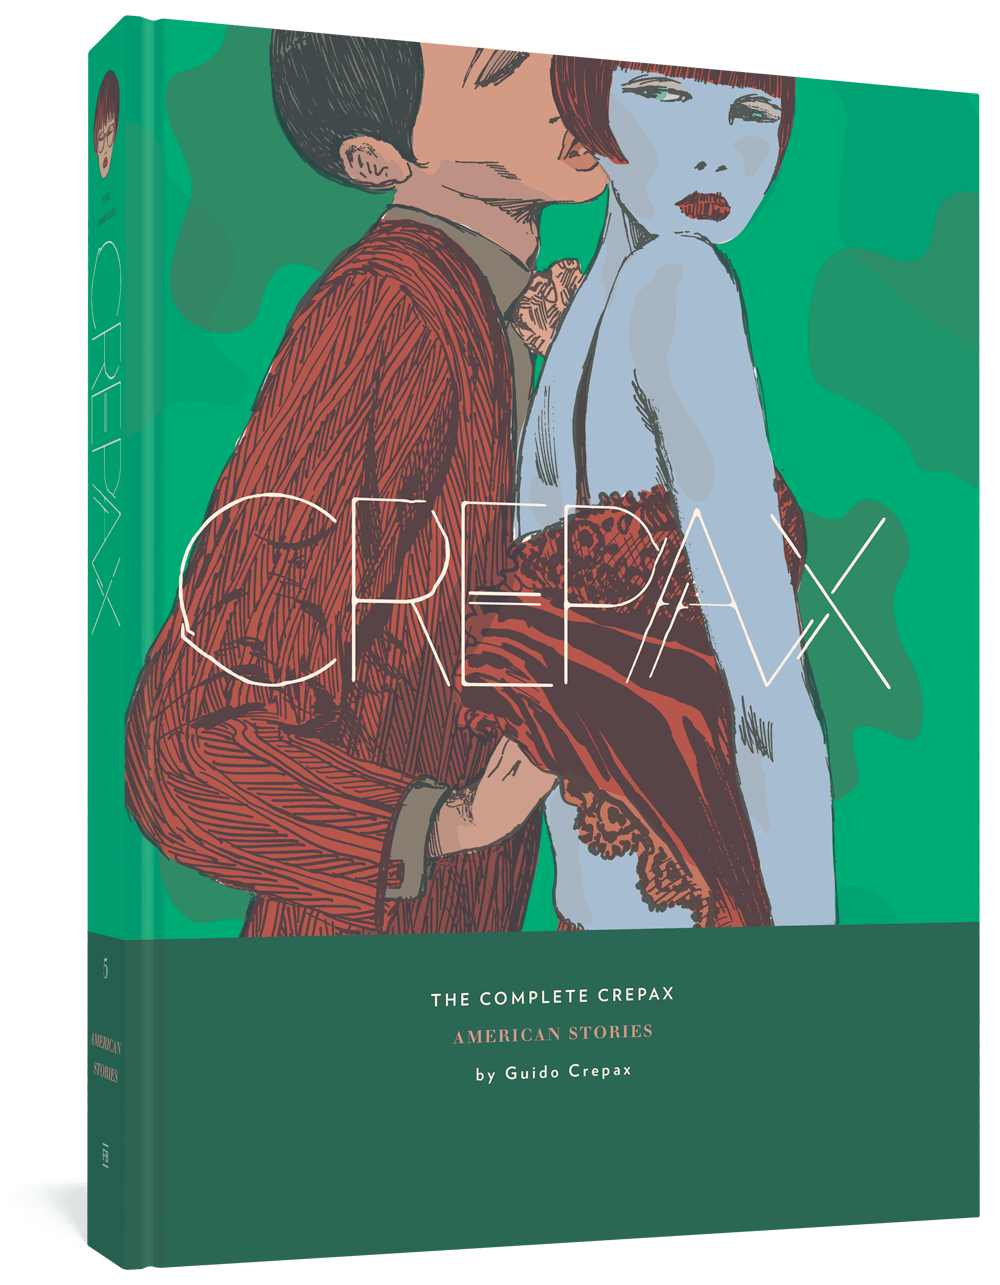 The Complete Crepax: American Stories: Volume 5